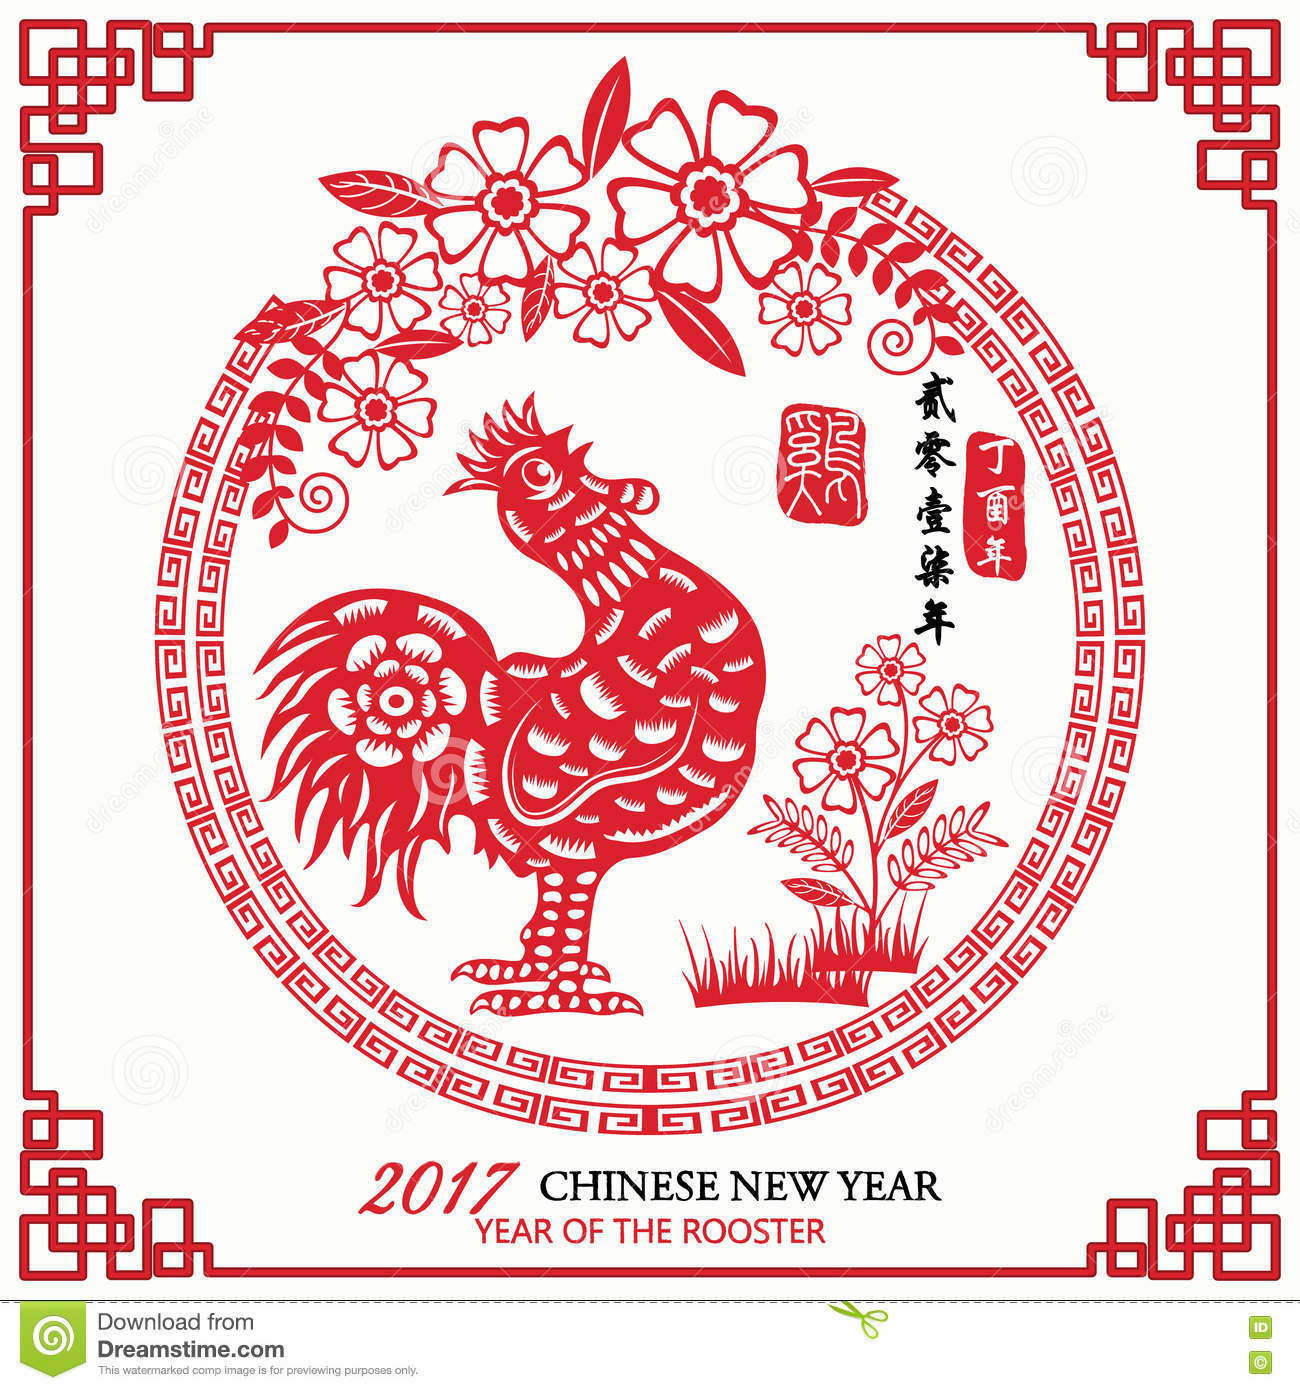 2017 lunar new year of the roosterchinese new yearchinese zodiac - Chinese New Year Zodiac